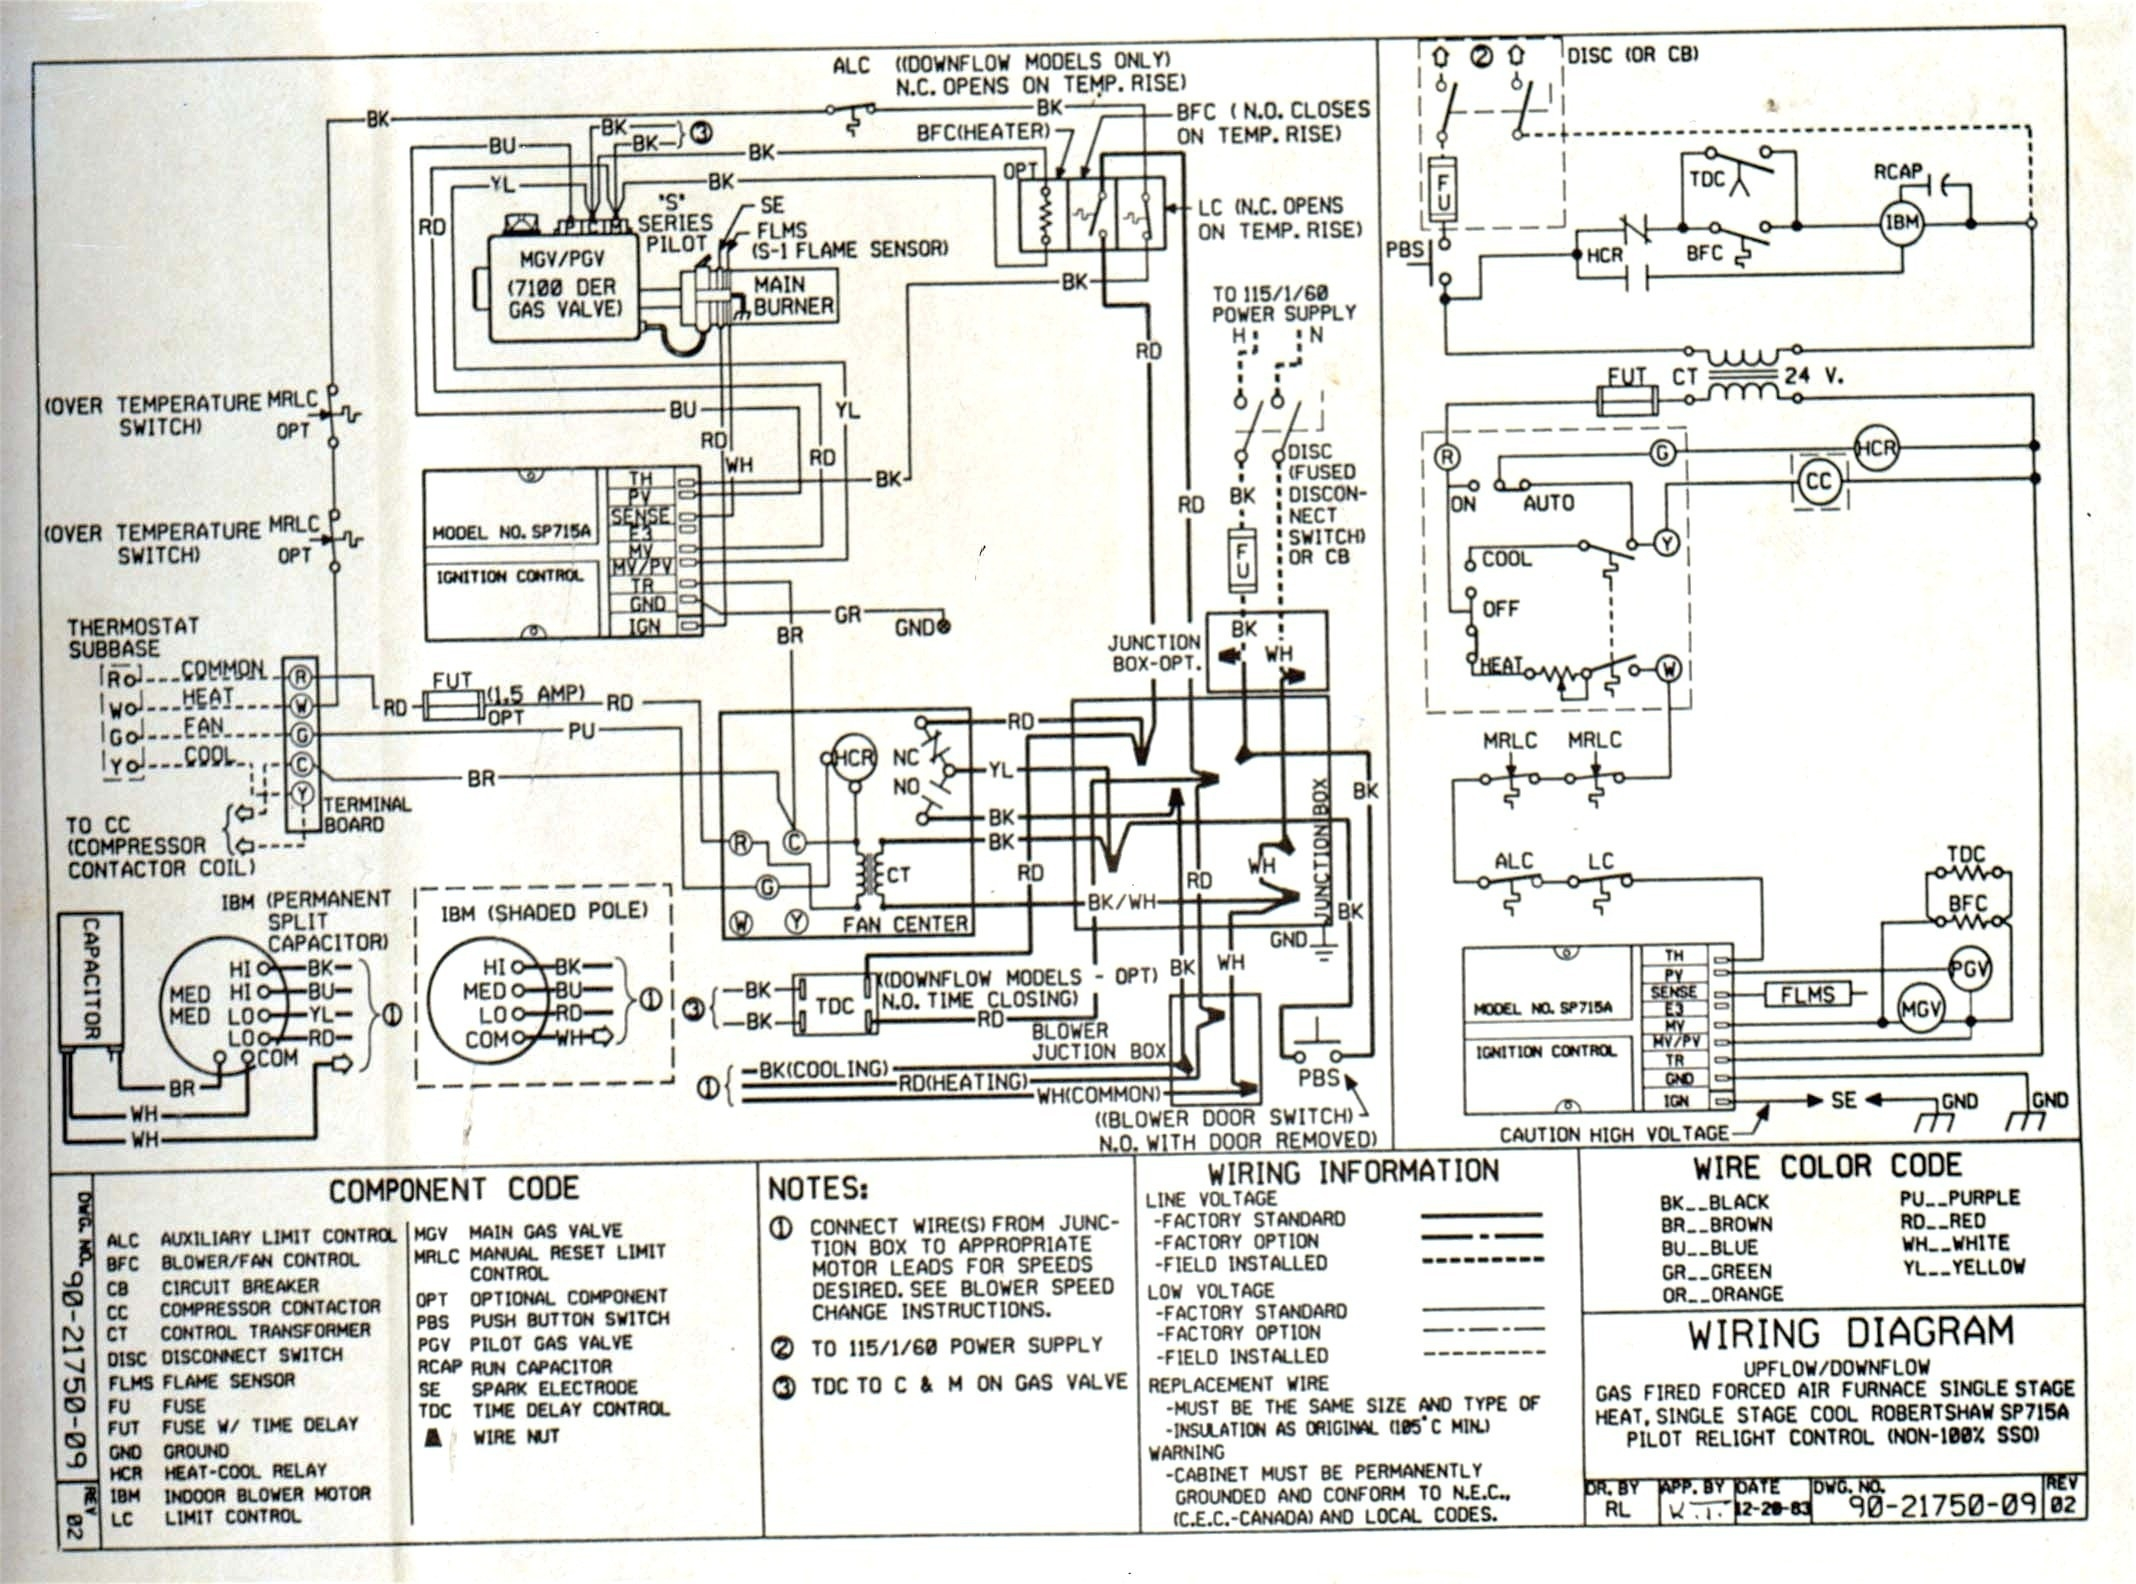 carrier ac wiring diagram Collection-carrier ac wiring diagram Collection Wiring Diagram Ac Split Sanyo Fresh Wiring Diagram Indoor Ac 4-r